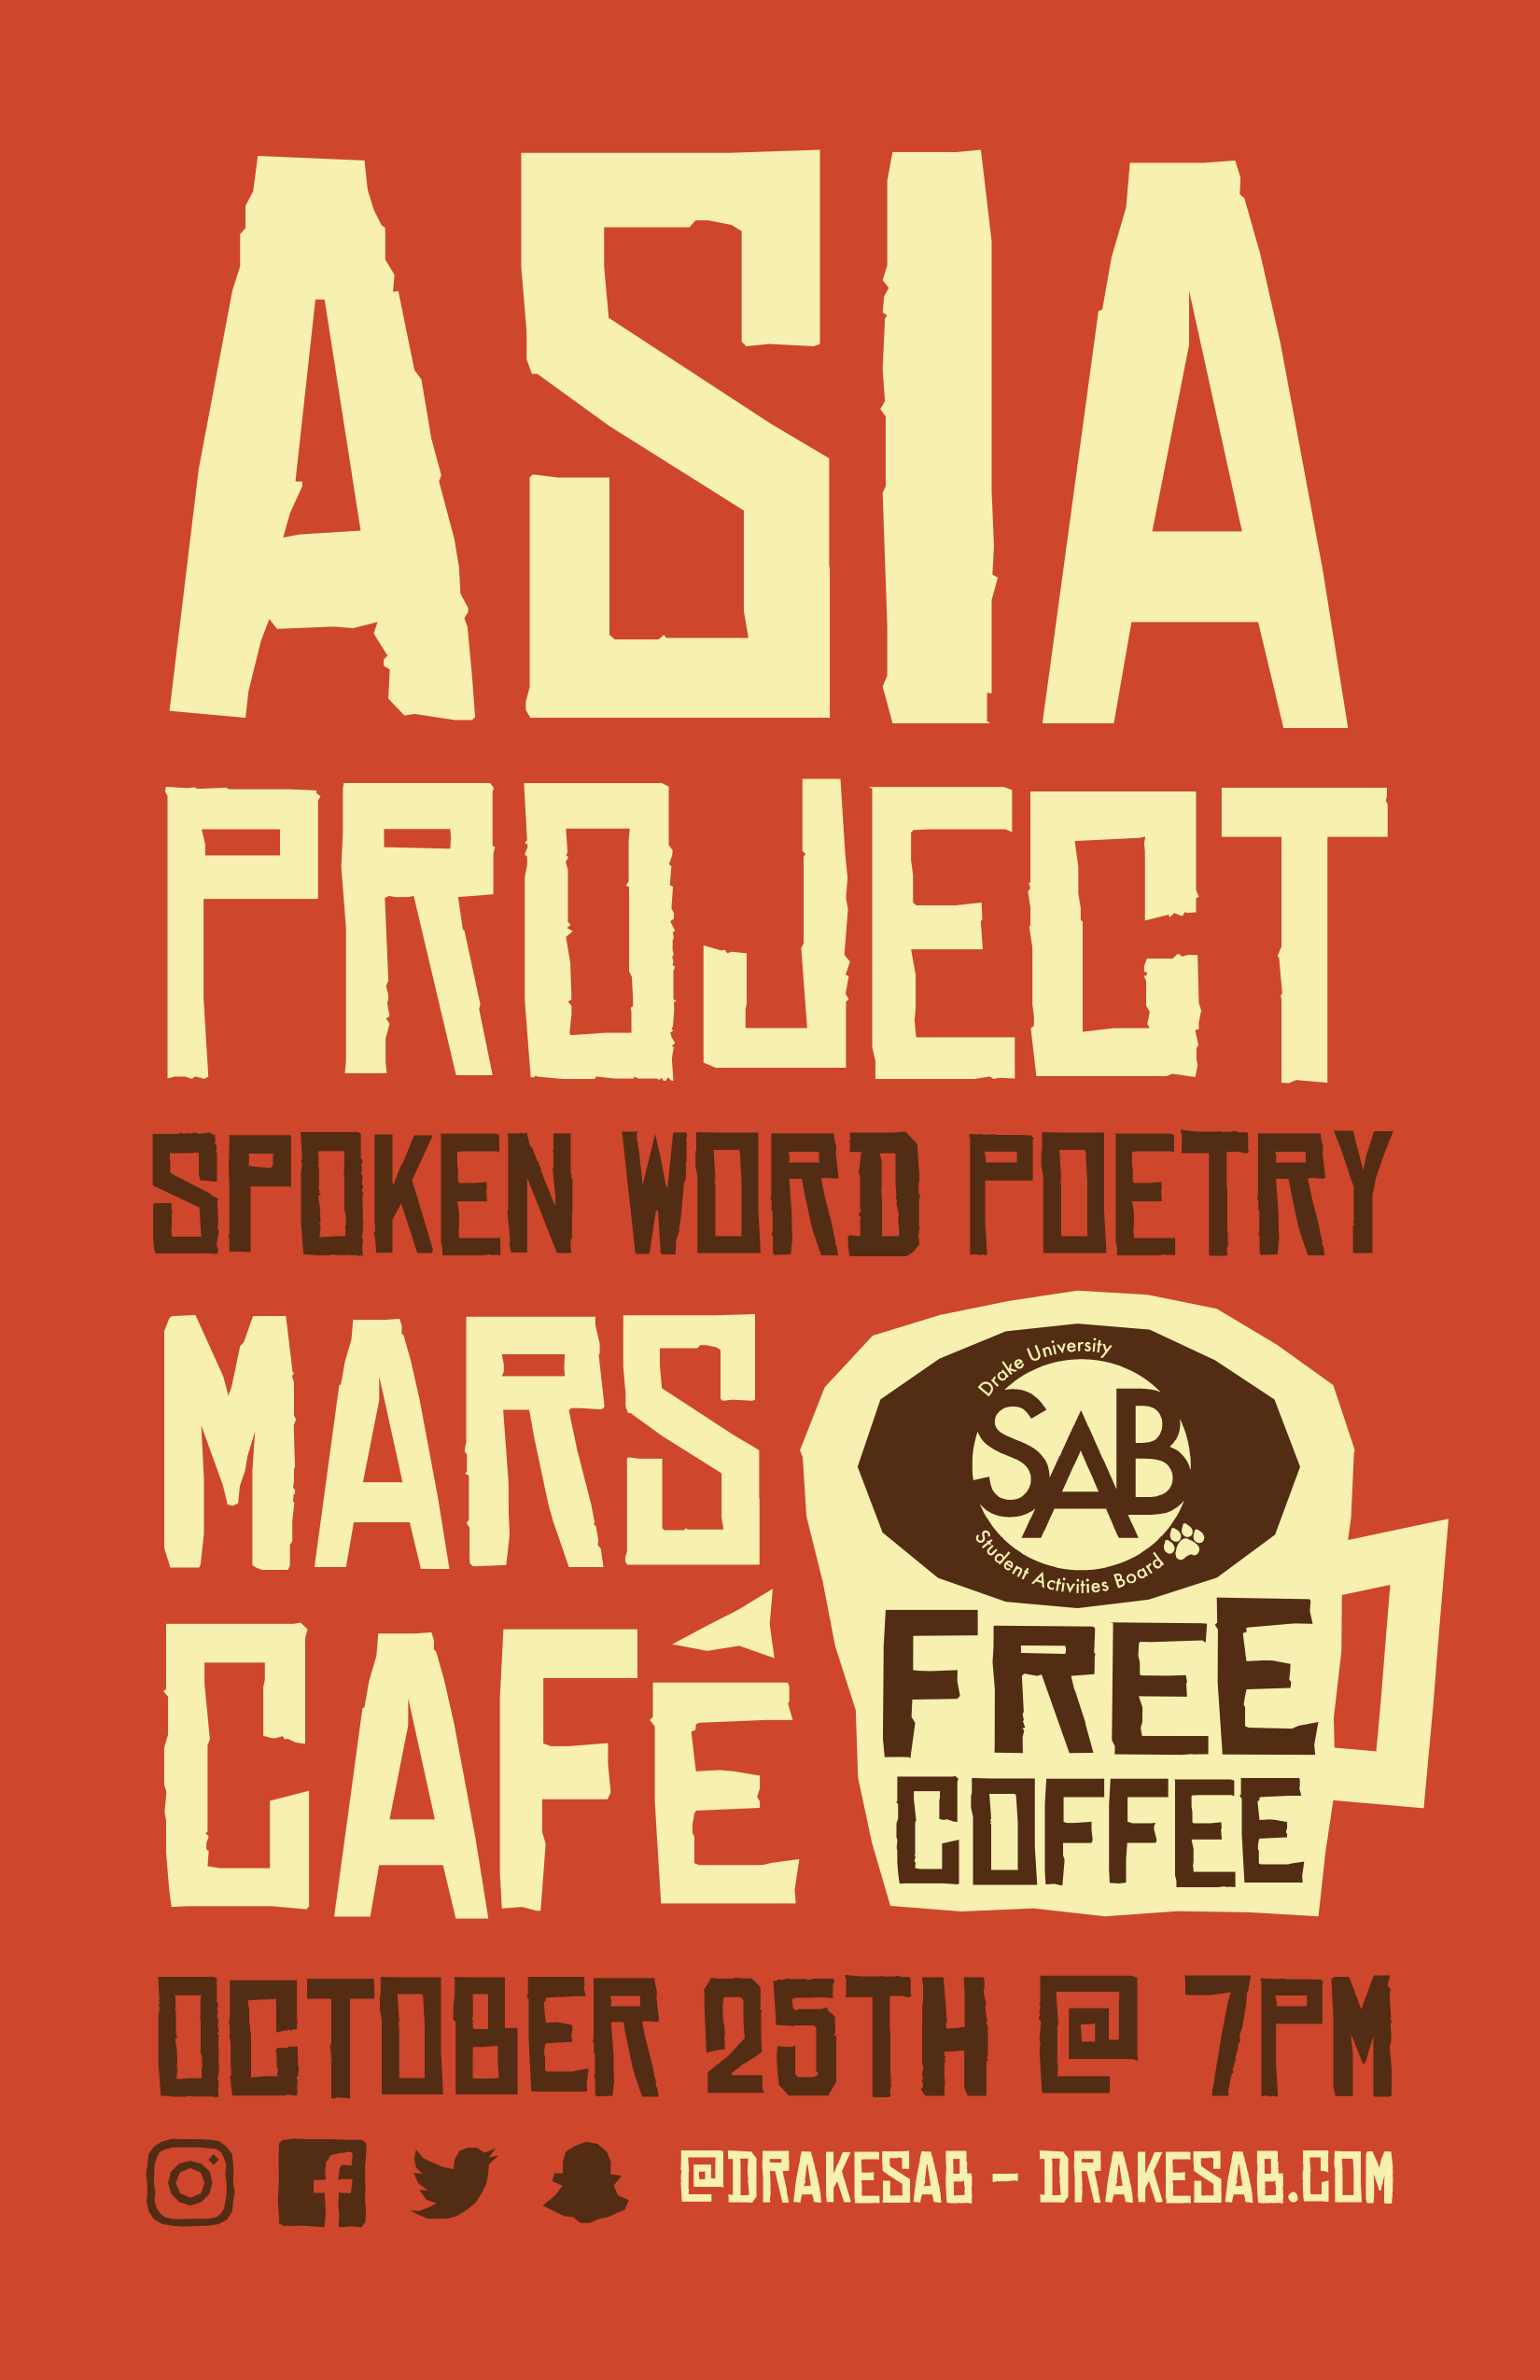 Asia Project online.png